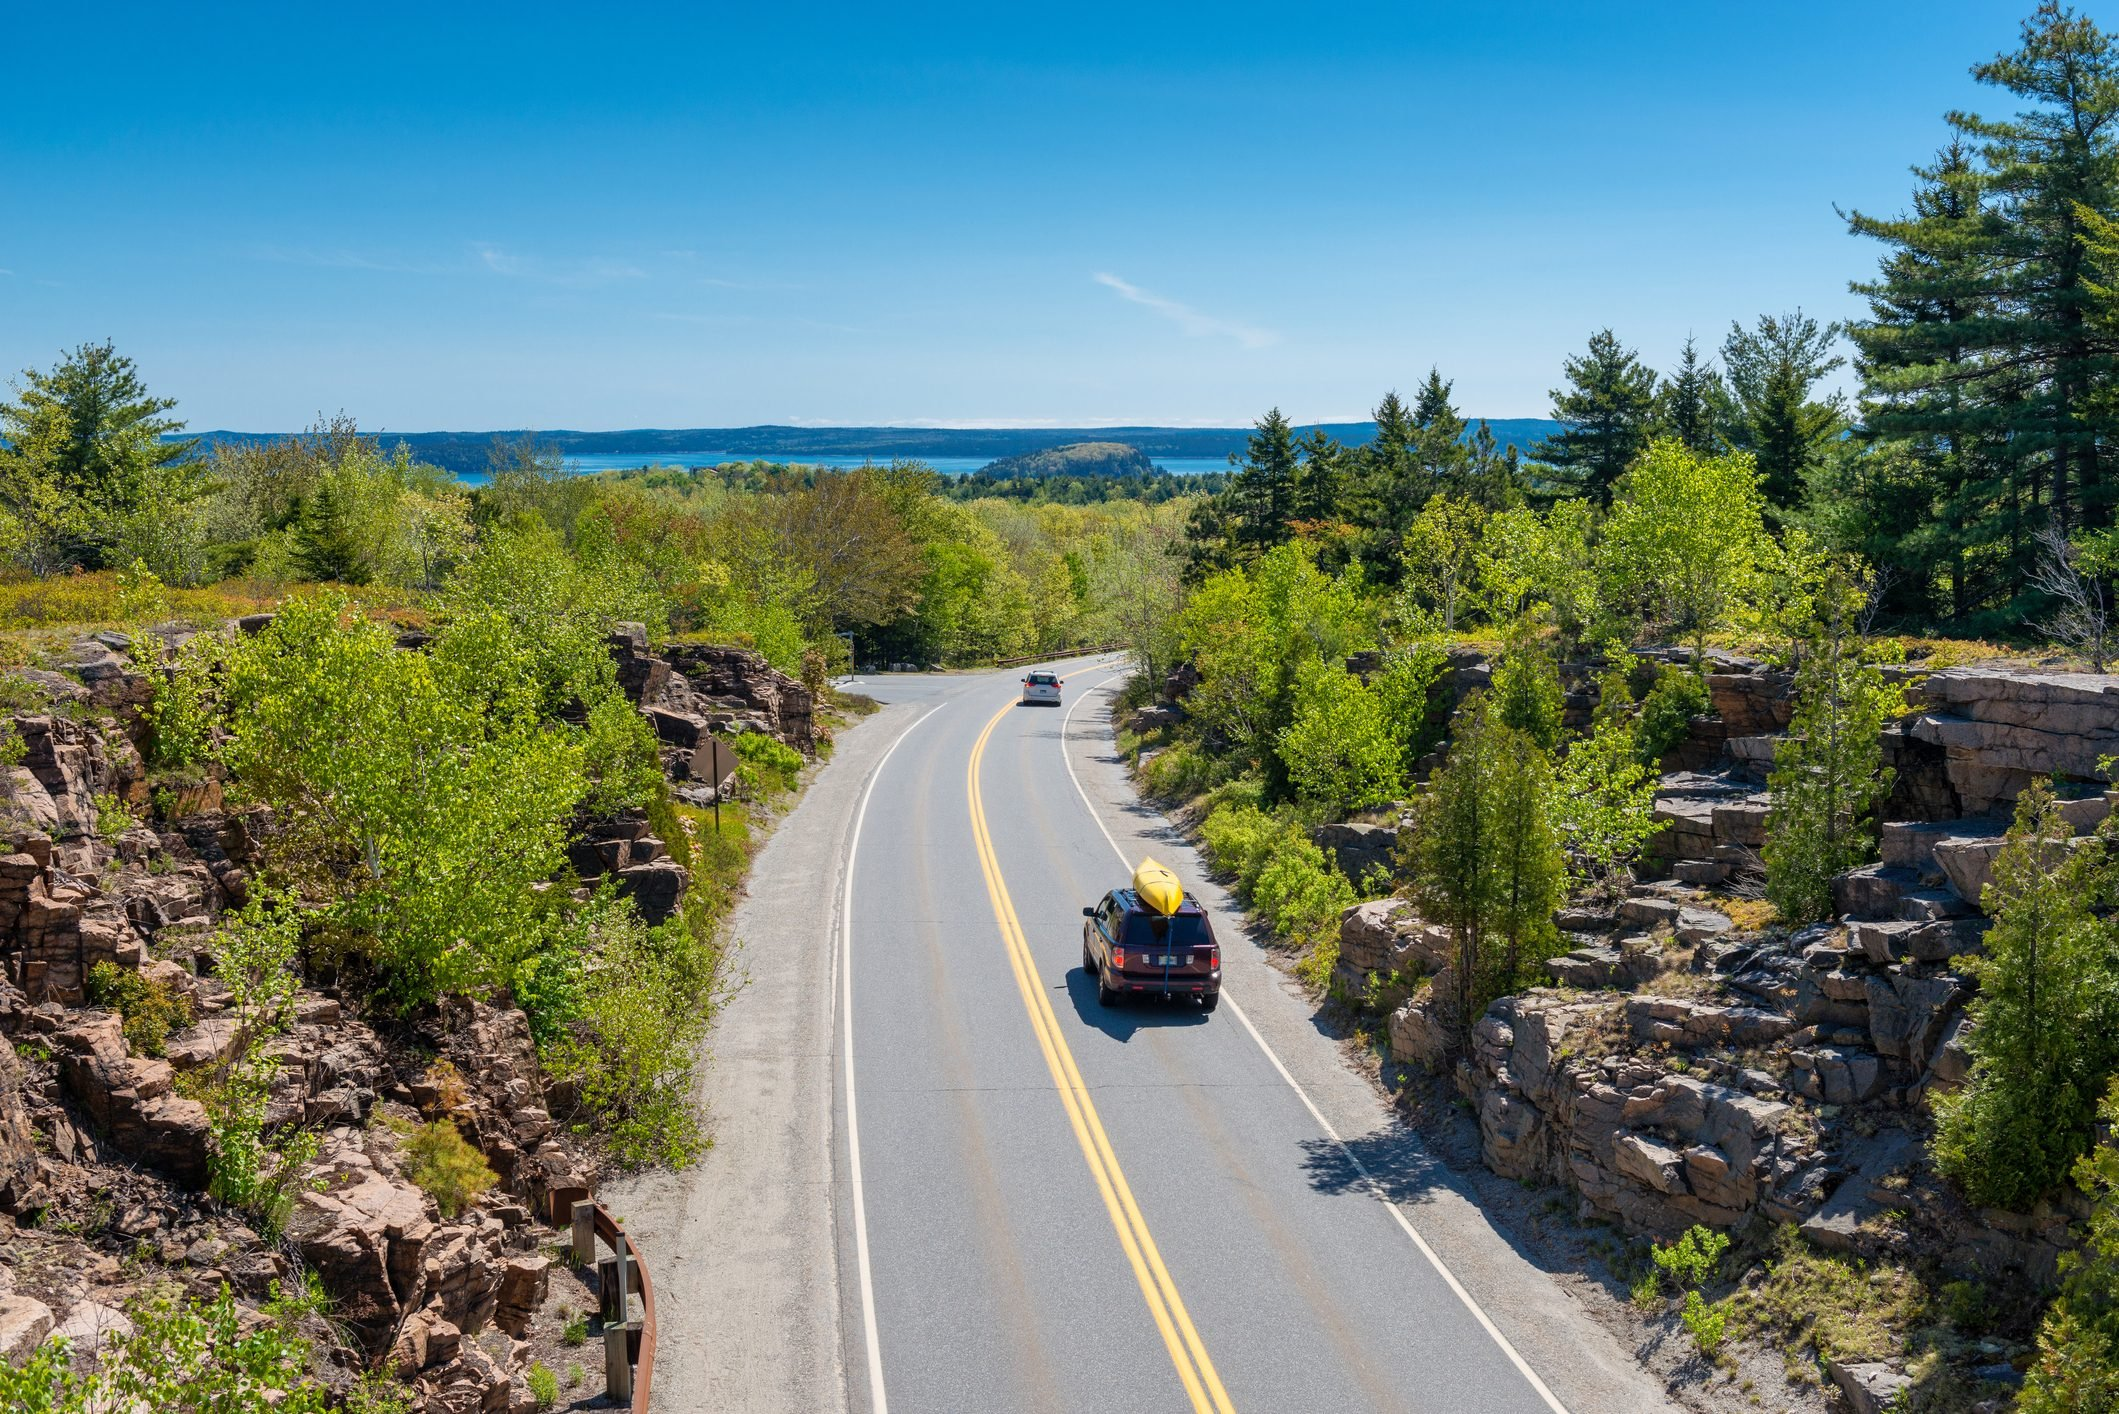 Cars driving on road in Acadia National Park, Maine, USA. One car holds a canoe on its roof.